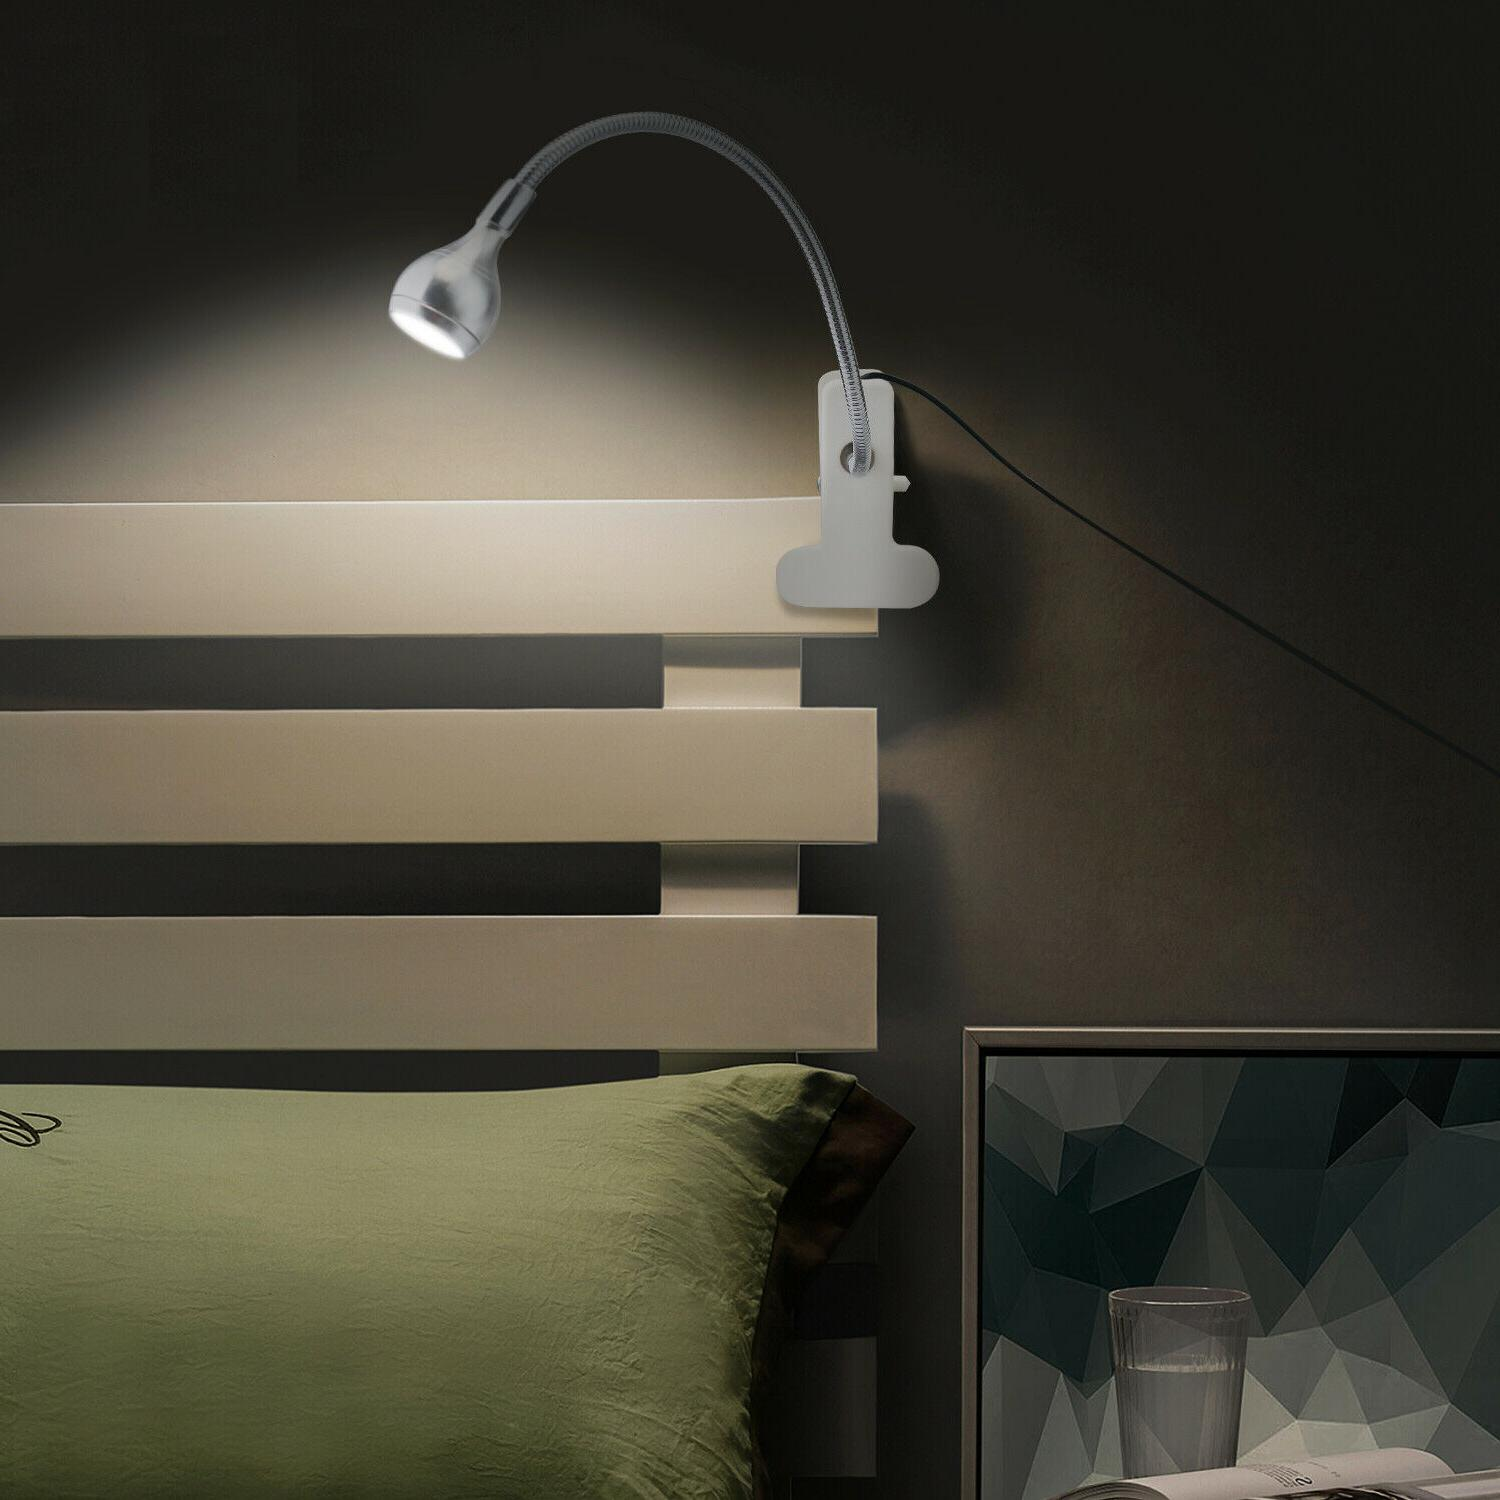 Flexible Clip LED Lamp Clamp Reading Light Headboard Study